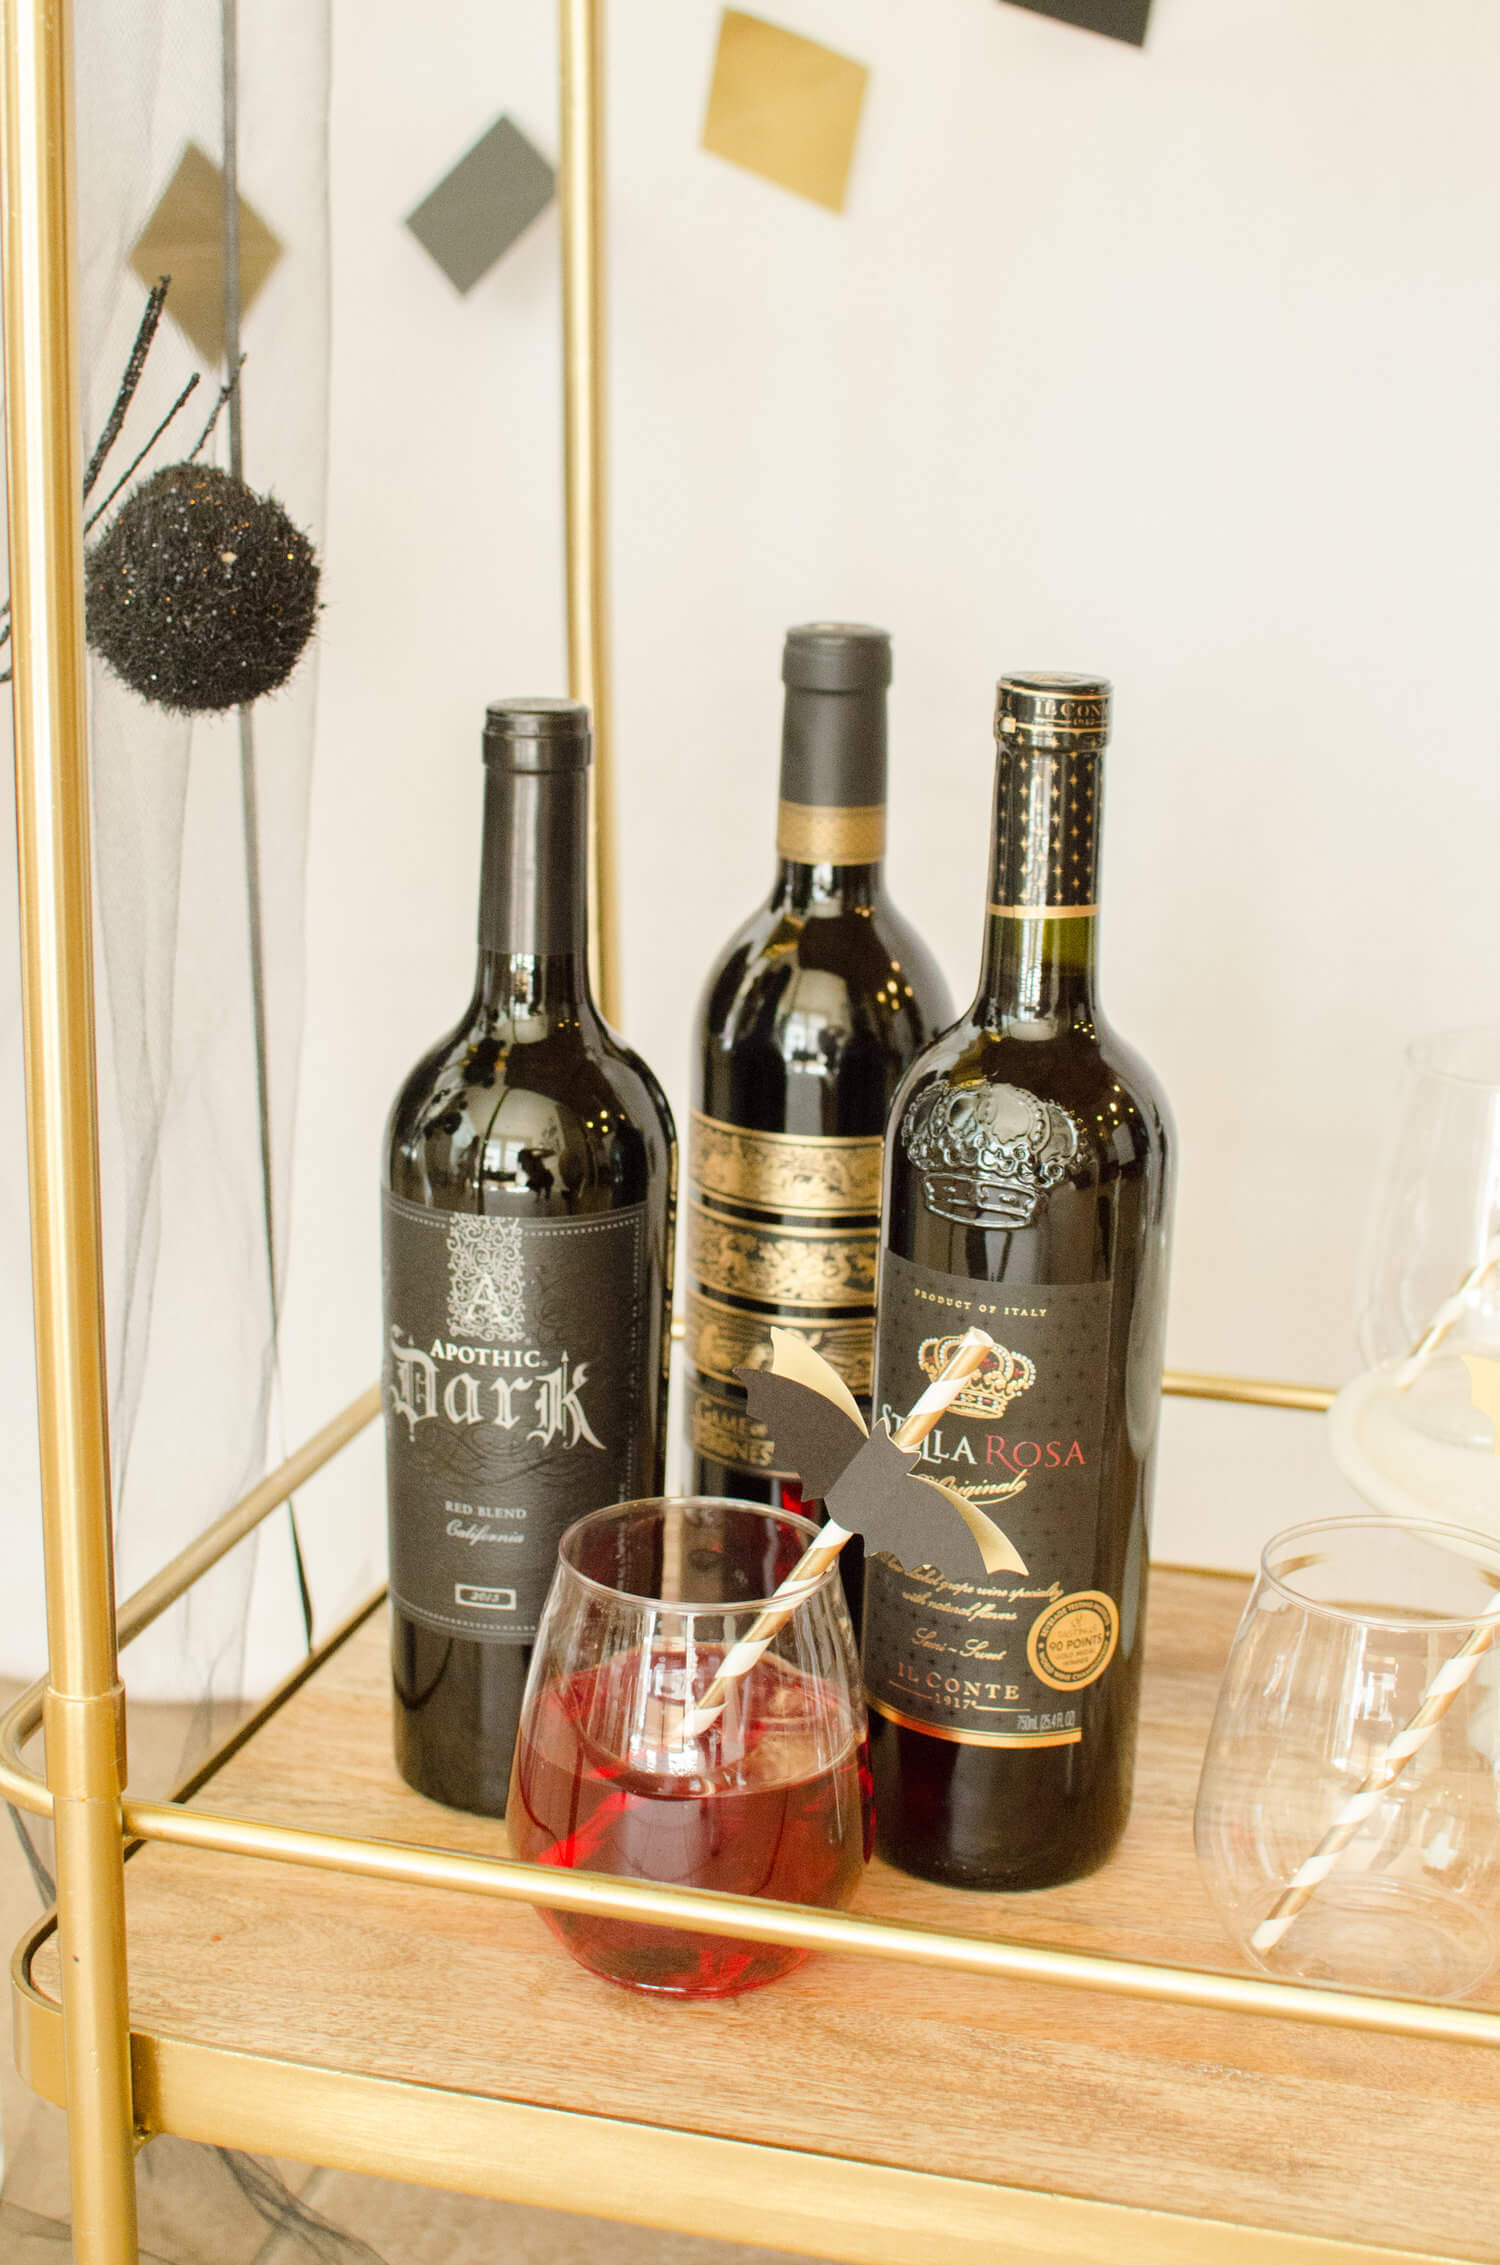 Be sure to serve Blood Red Wine at your Spooky Halloween Soiree in black wine bottles. Click for more Bar Cart styling ideas by party stylist Carolina of Mint Event Design. #partyideas #partyinspiration #halloween #partystyling #redwine #halloweenparty